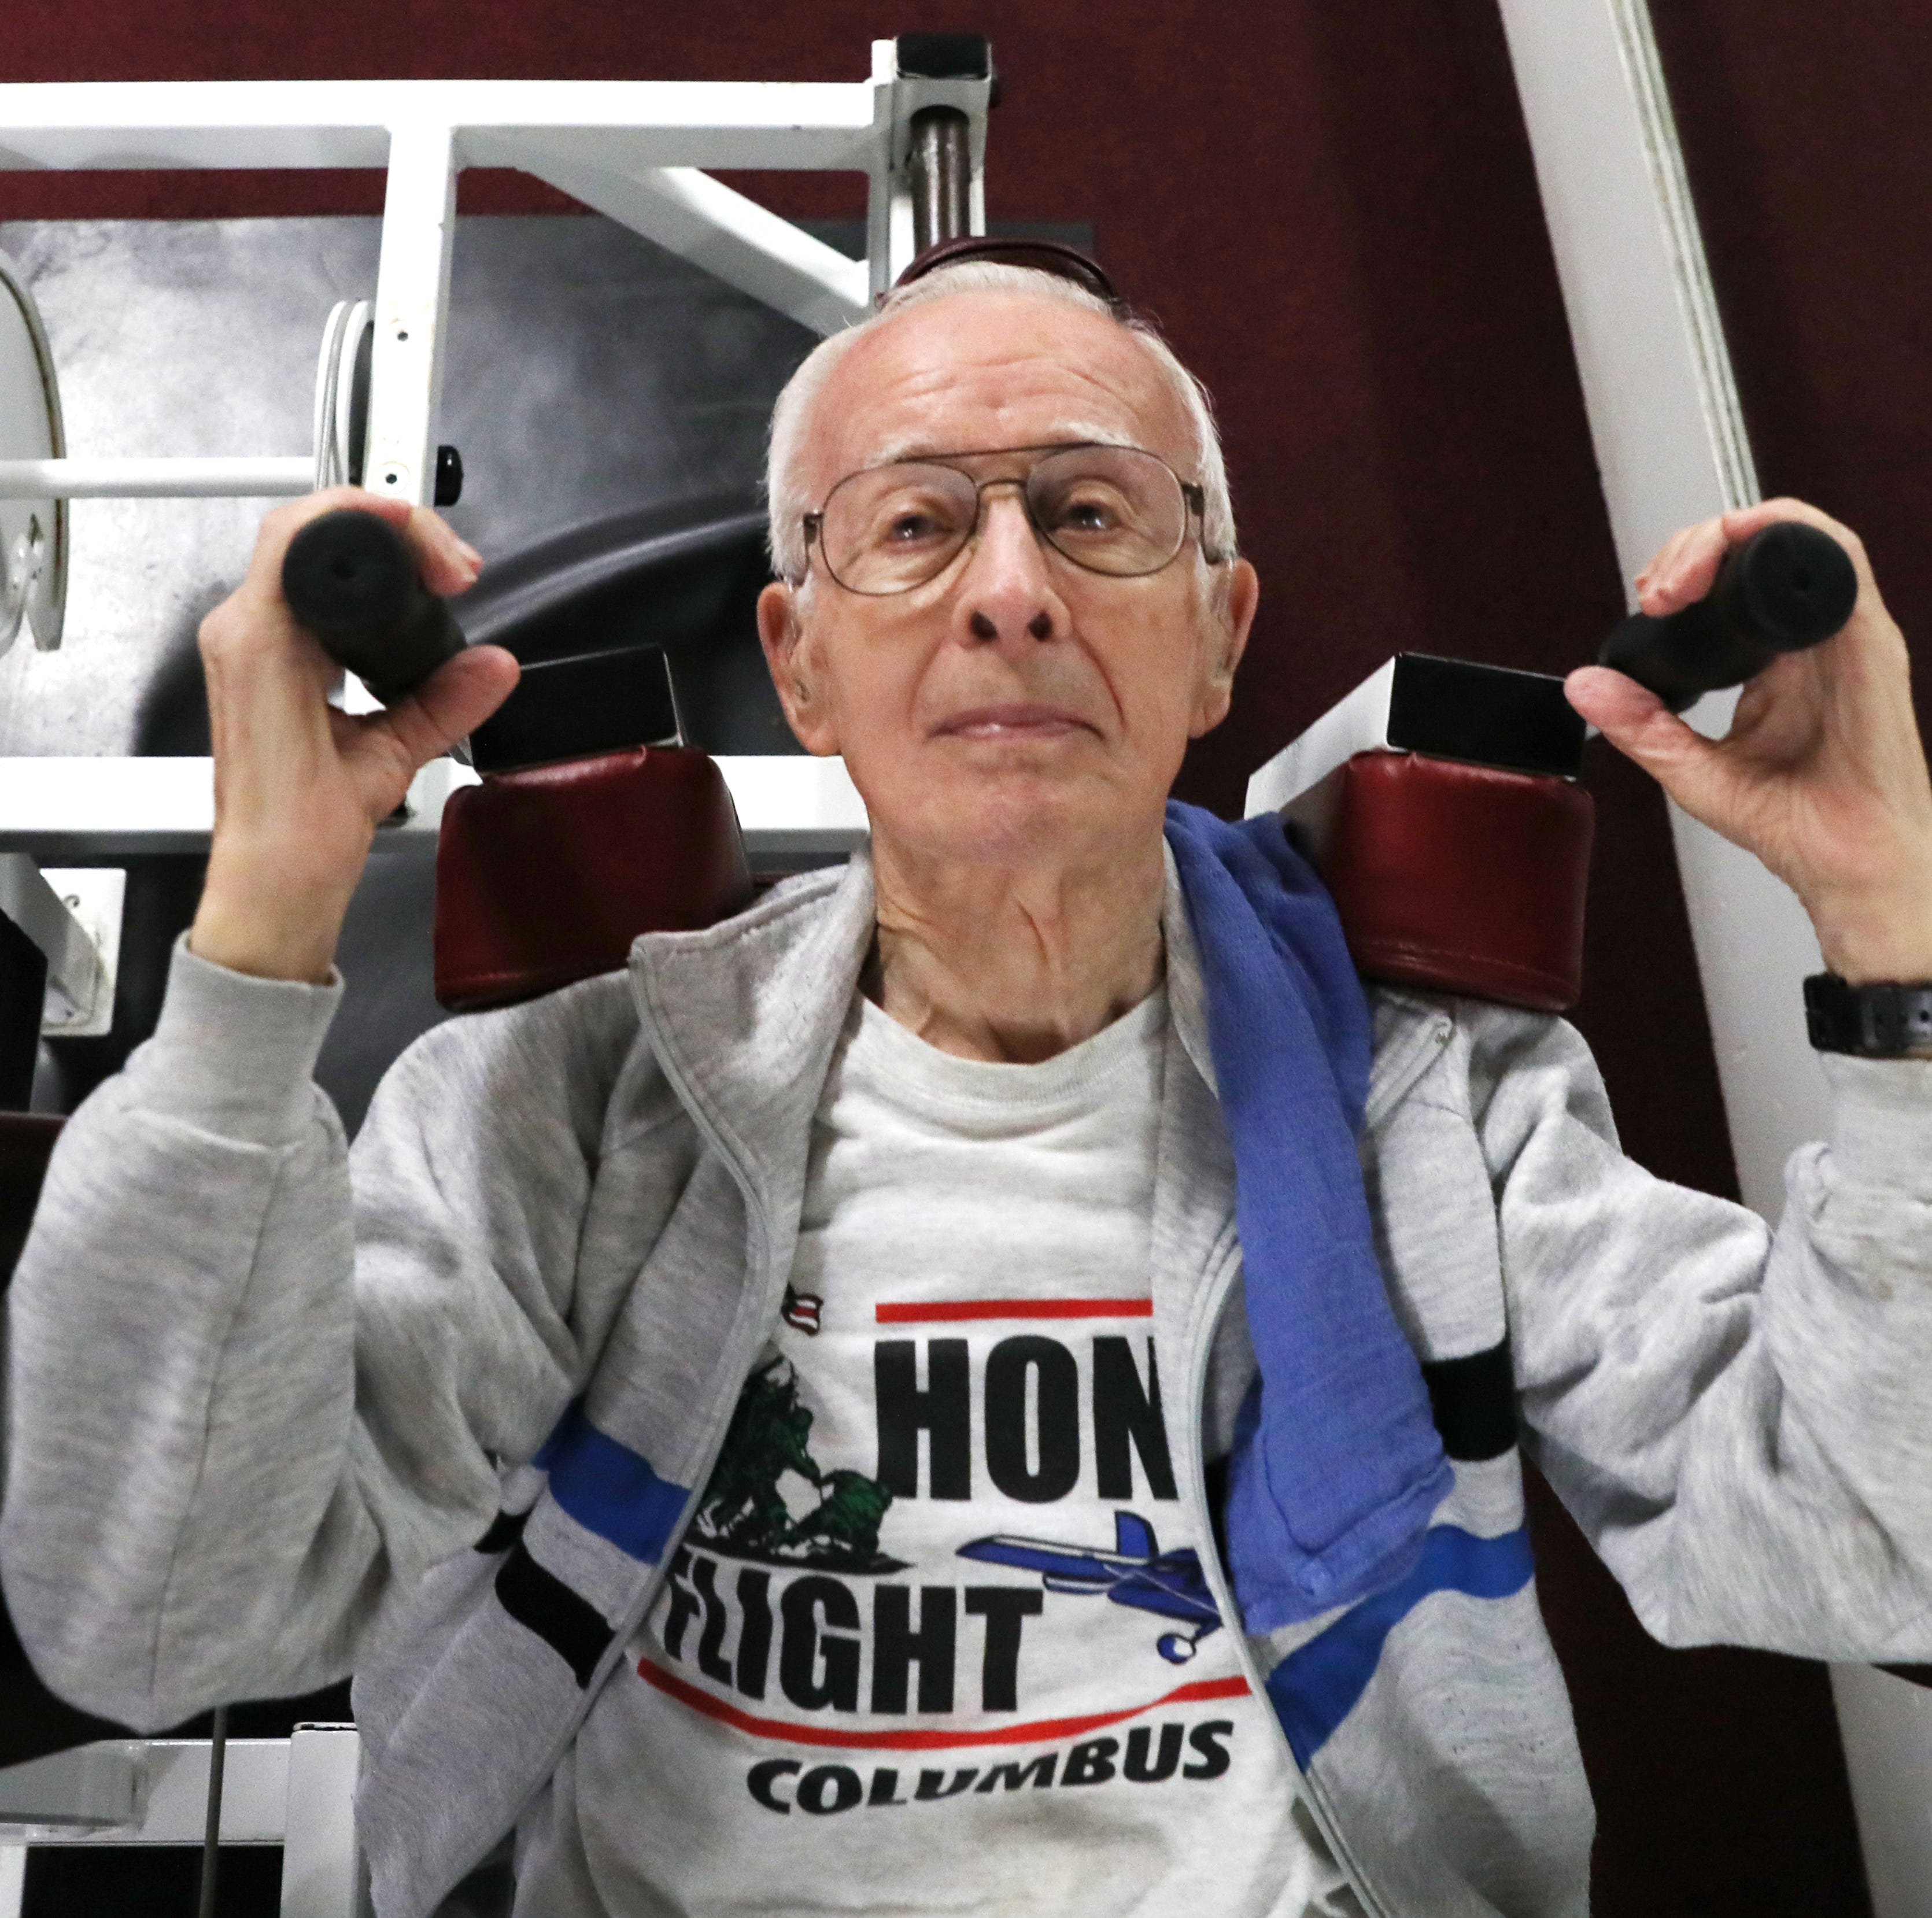 The elder of inspiration: 94-year-old setting the example